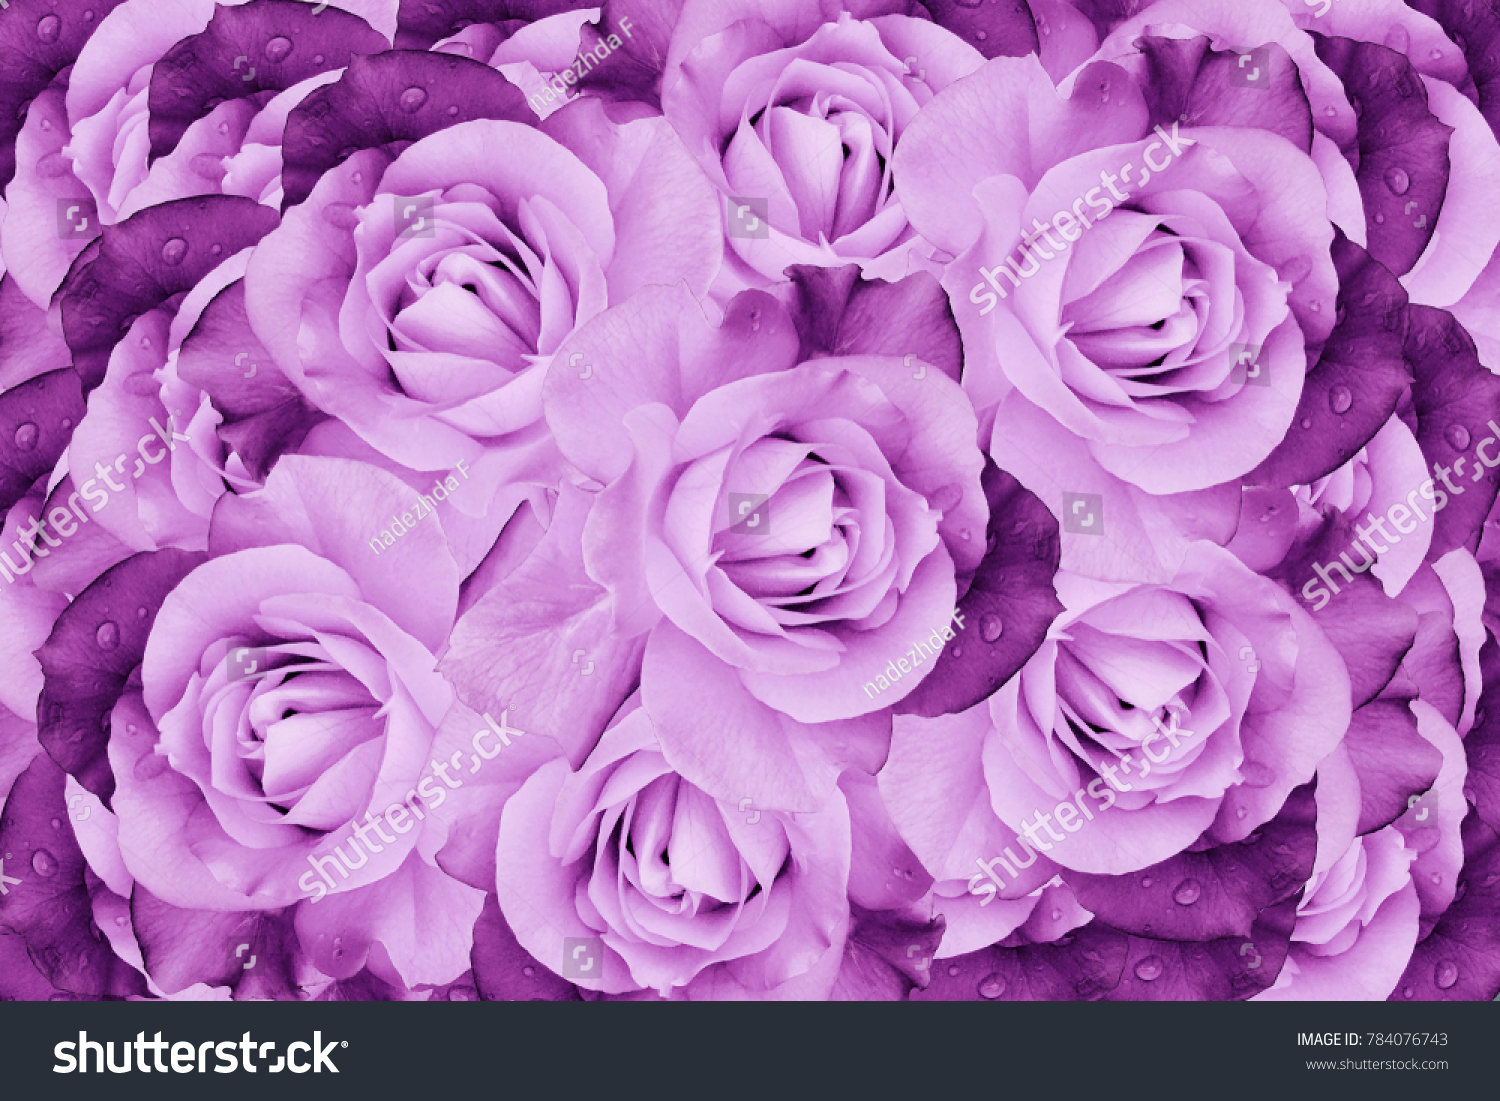 Floral pink violet beautiful background flower composition of roses id 784076743 izmirmasajfo